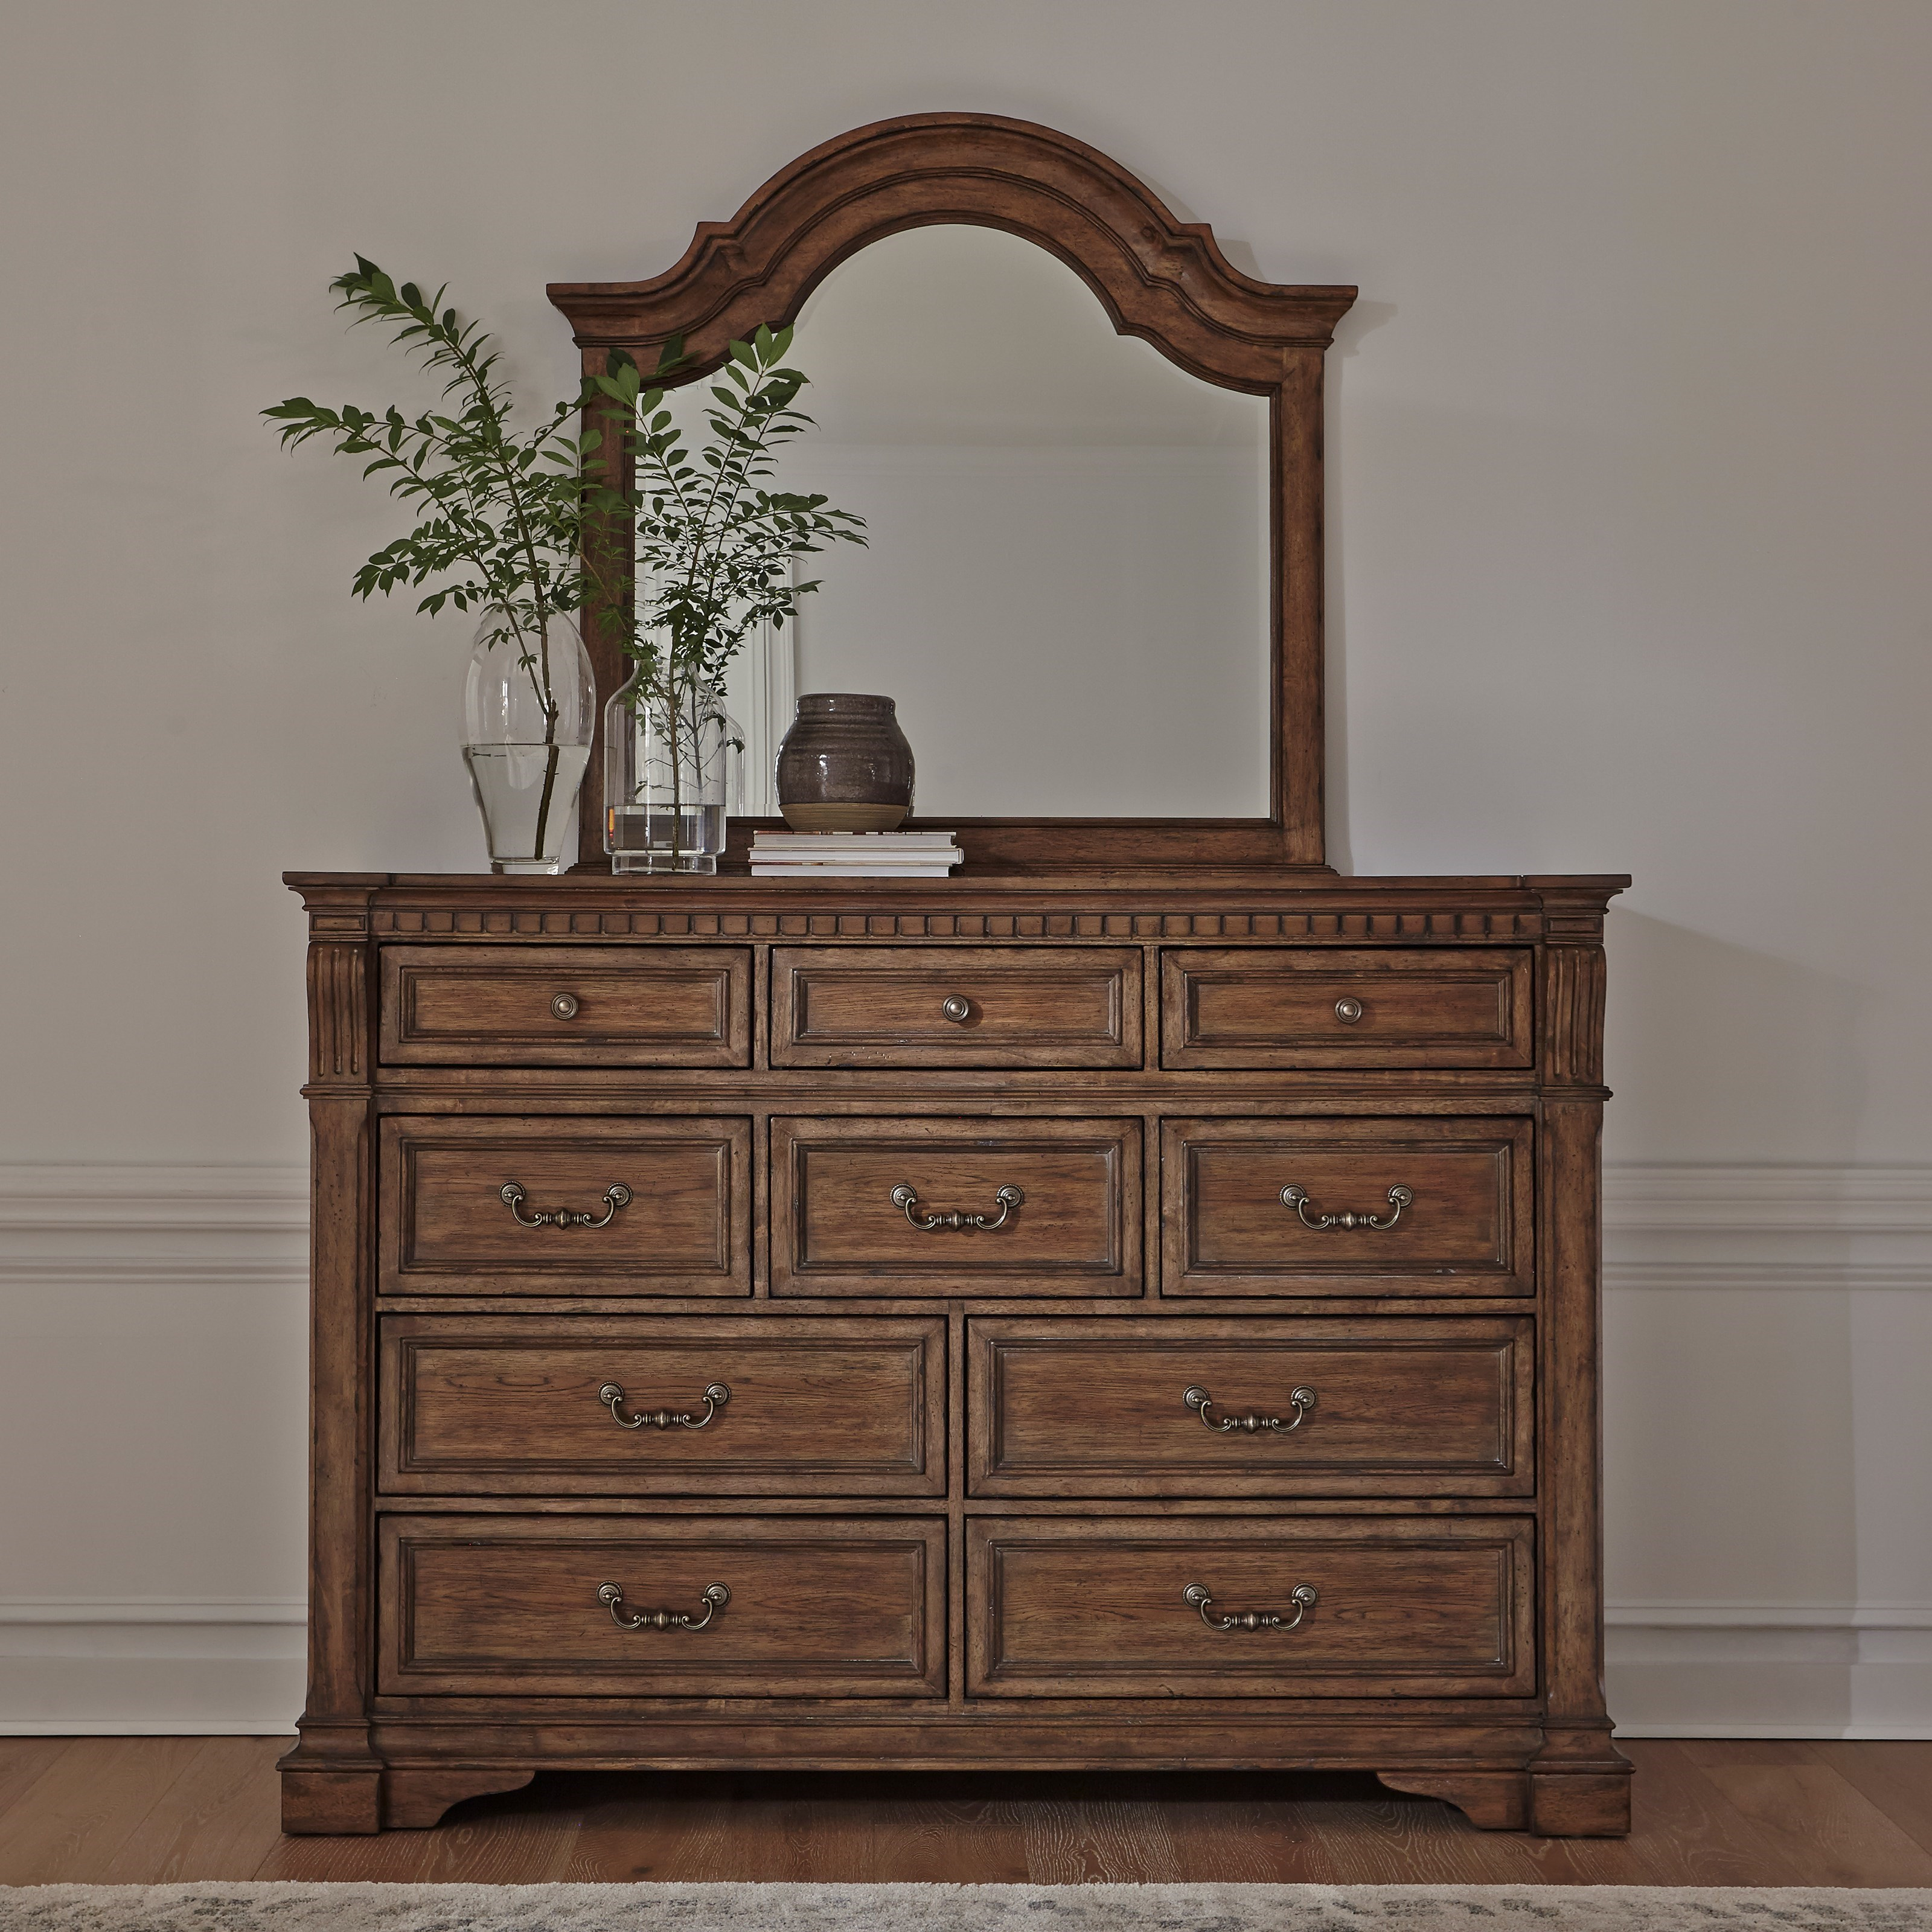 10-Drawer Dresser and Arched Mirror Set